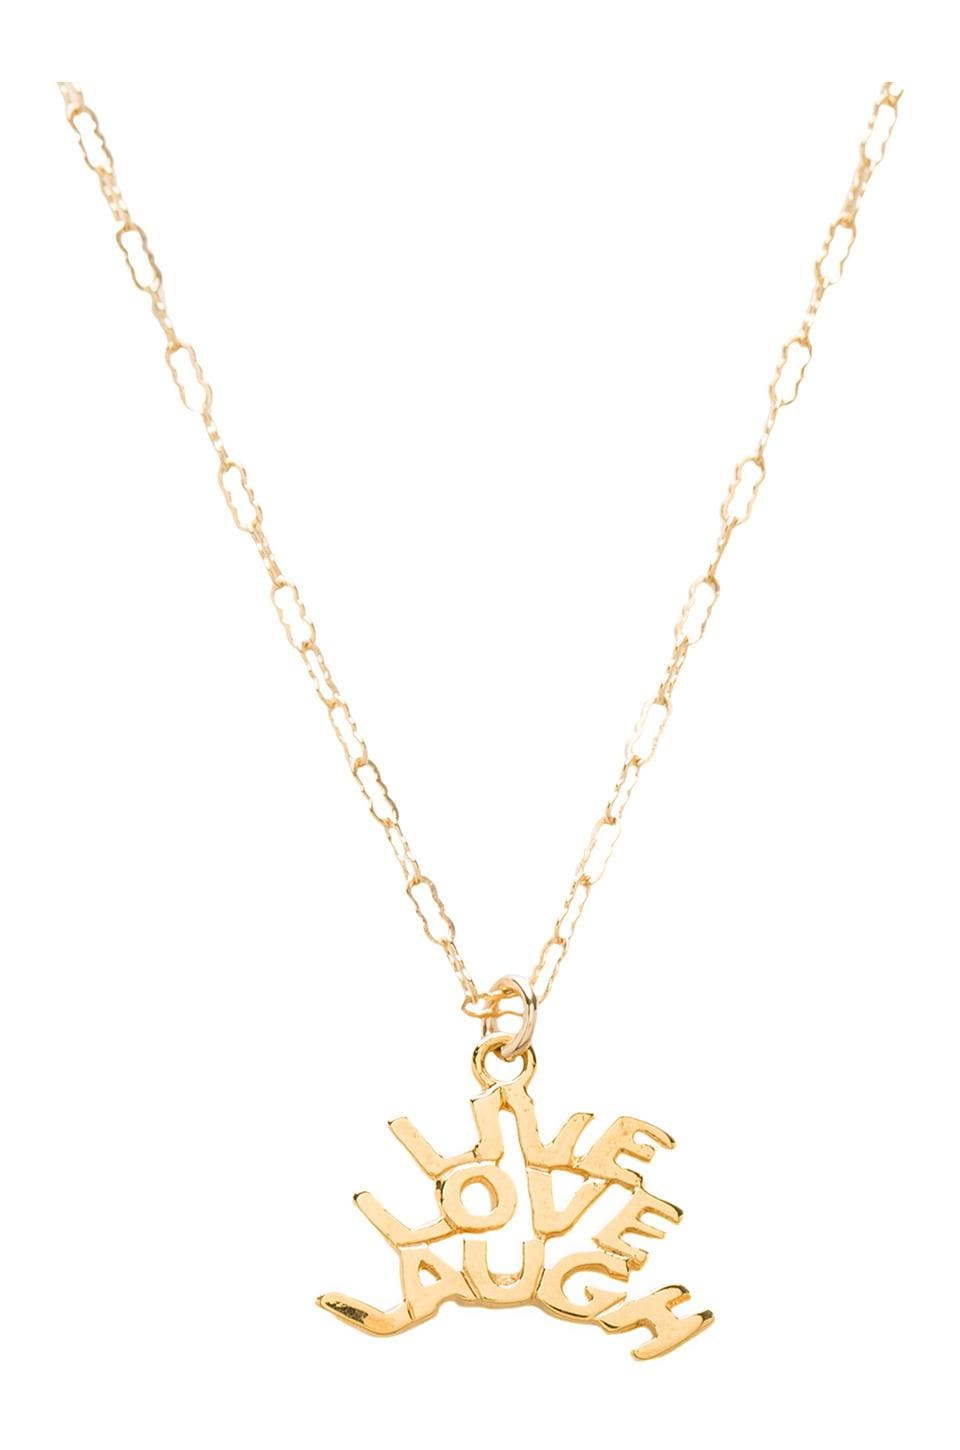 Natalie B Jewelry Natalie B Live Love Laugh in Gold